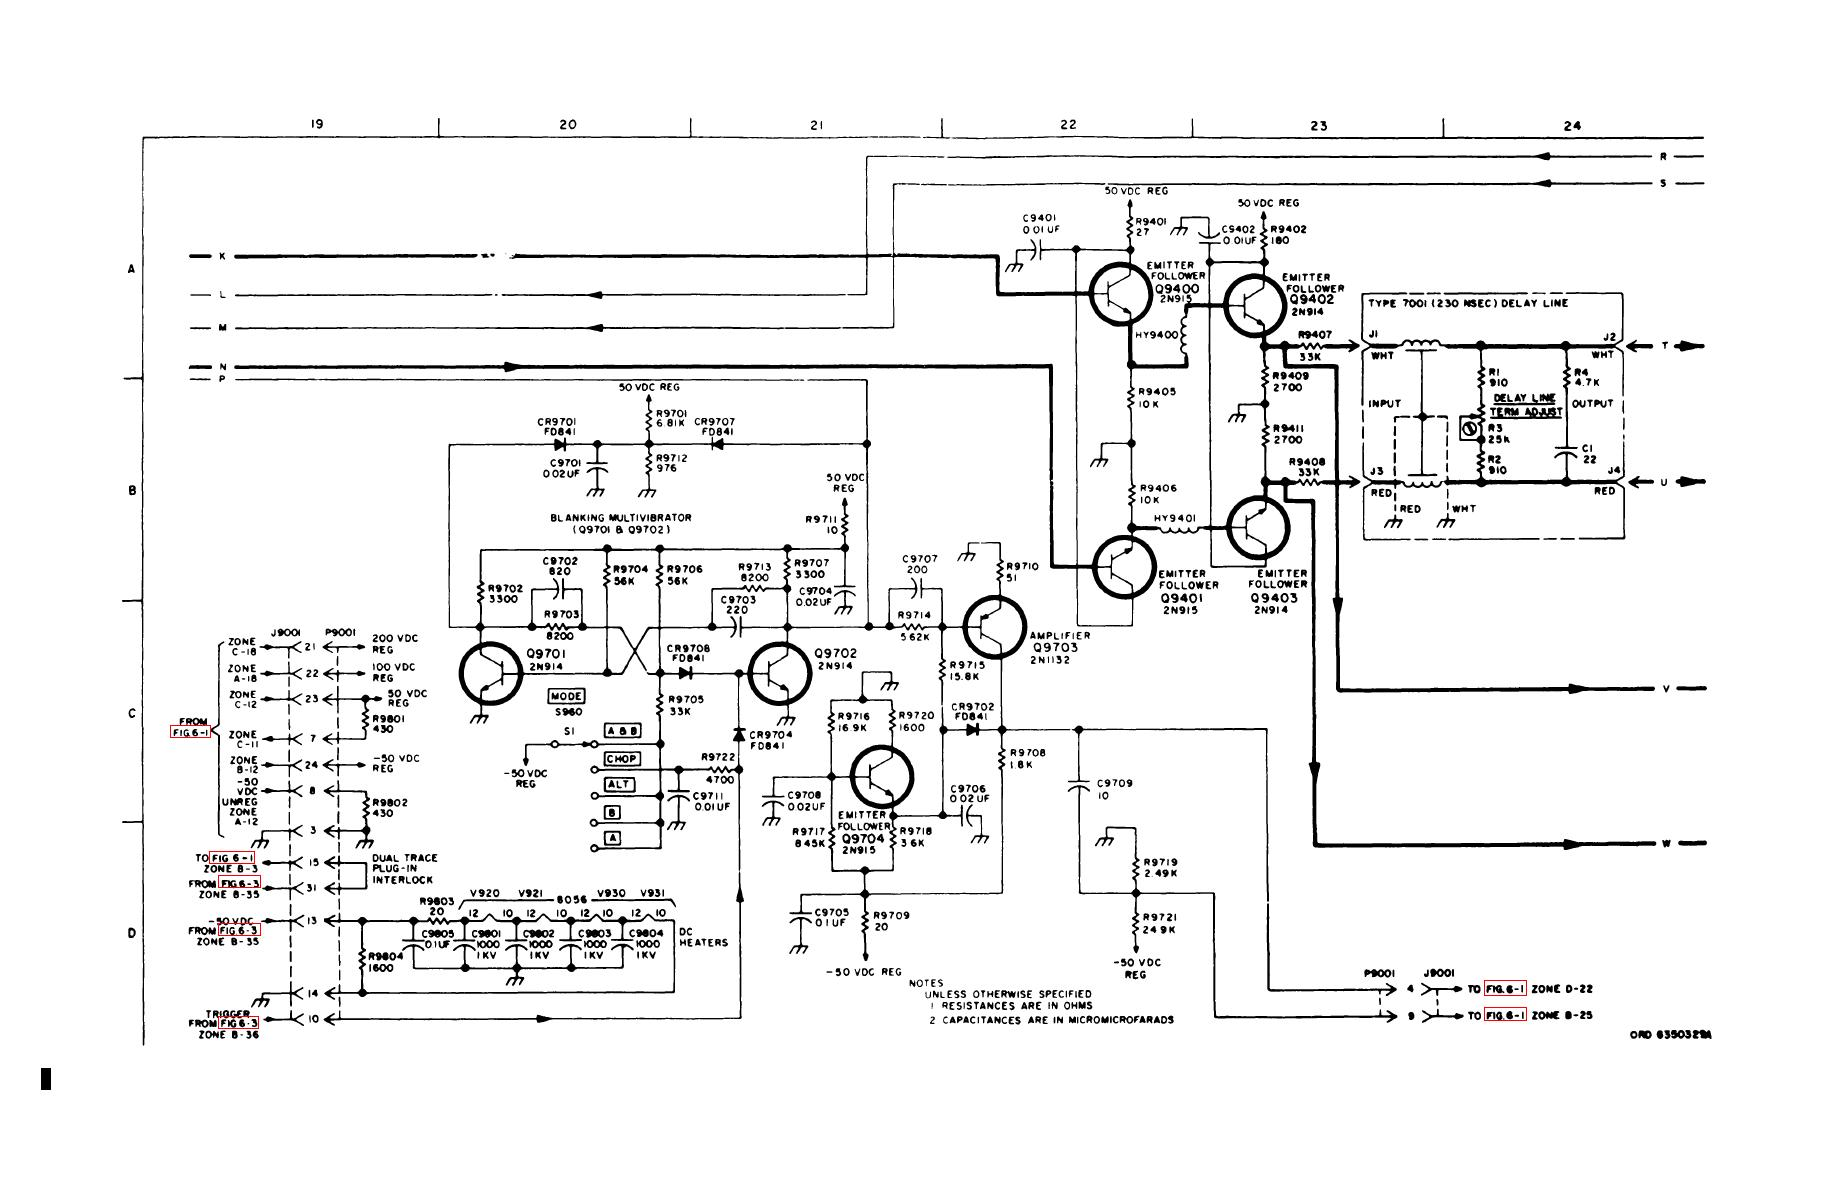 Figure 6 2 Dual Trace Plug In Type 76 02a With Mod 101 And Delay Line Schematic Sheet 4 Of 5